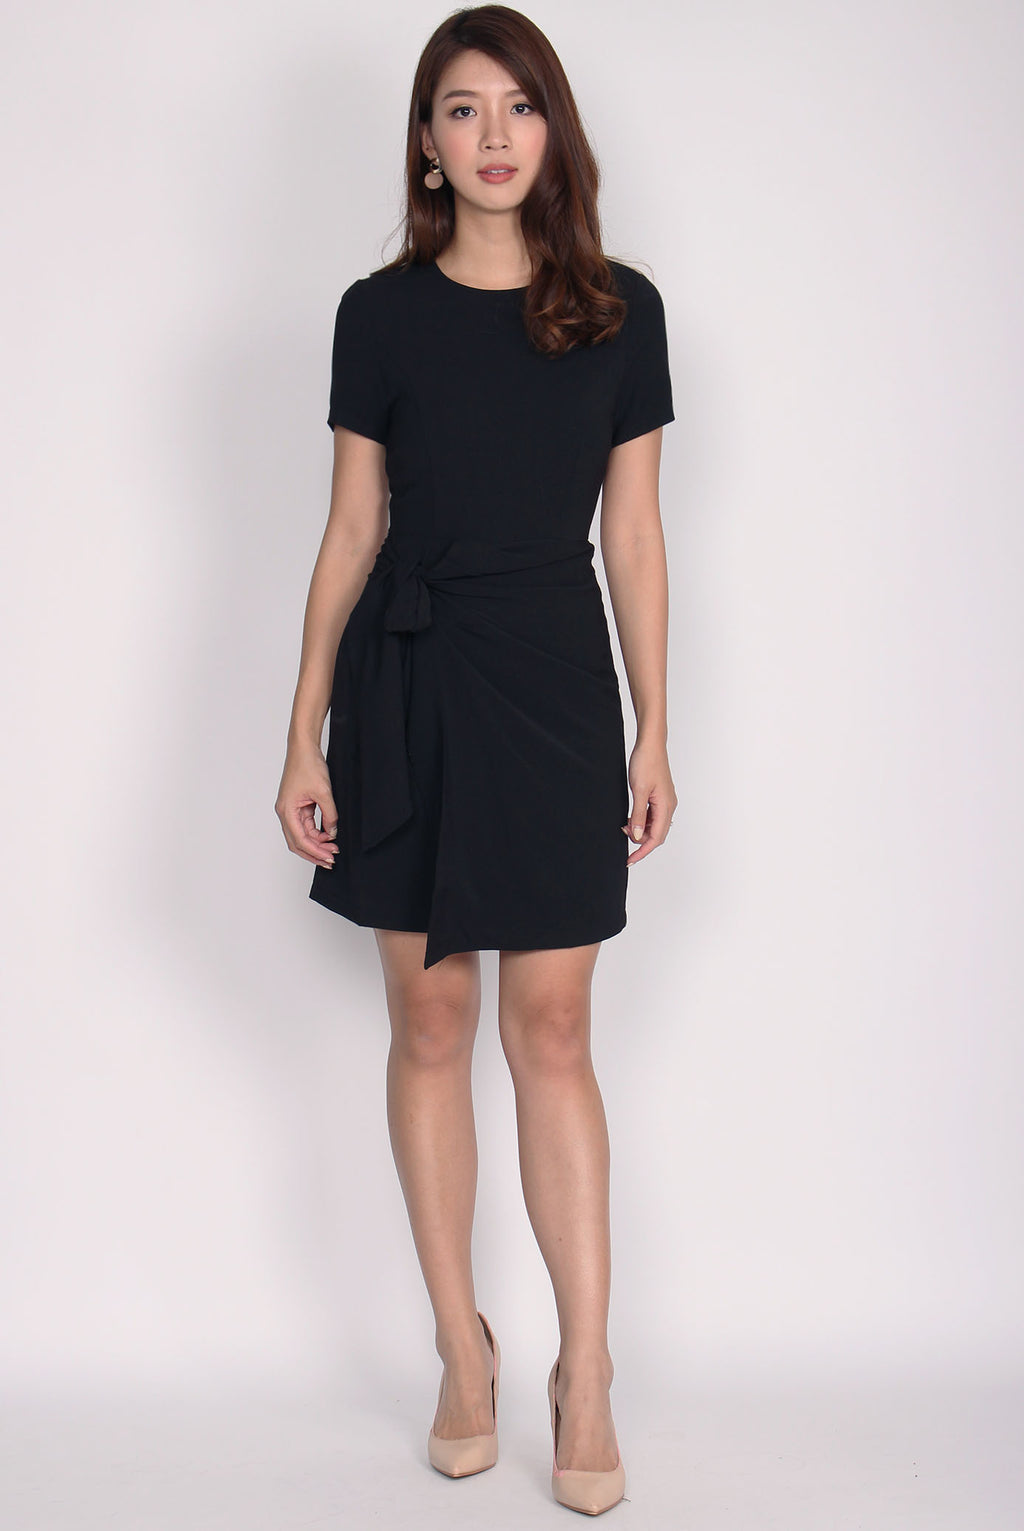 TDC Clover Overlap Dress In Black